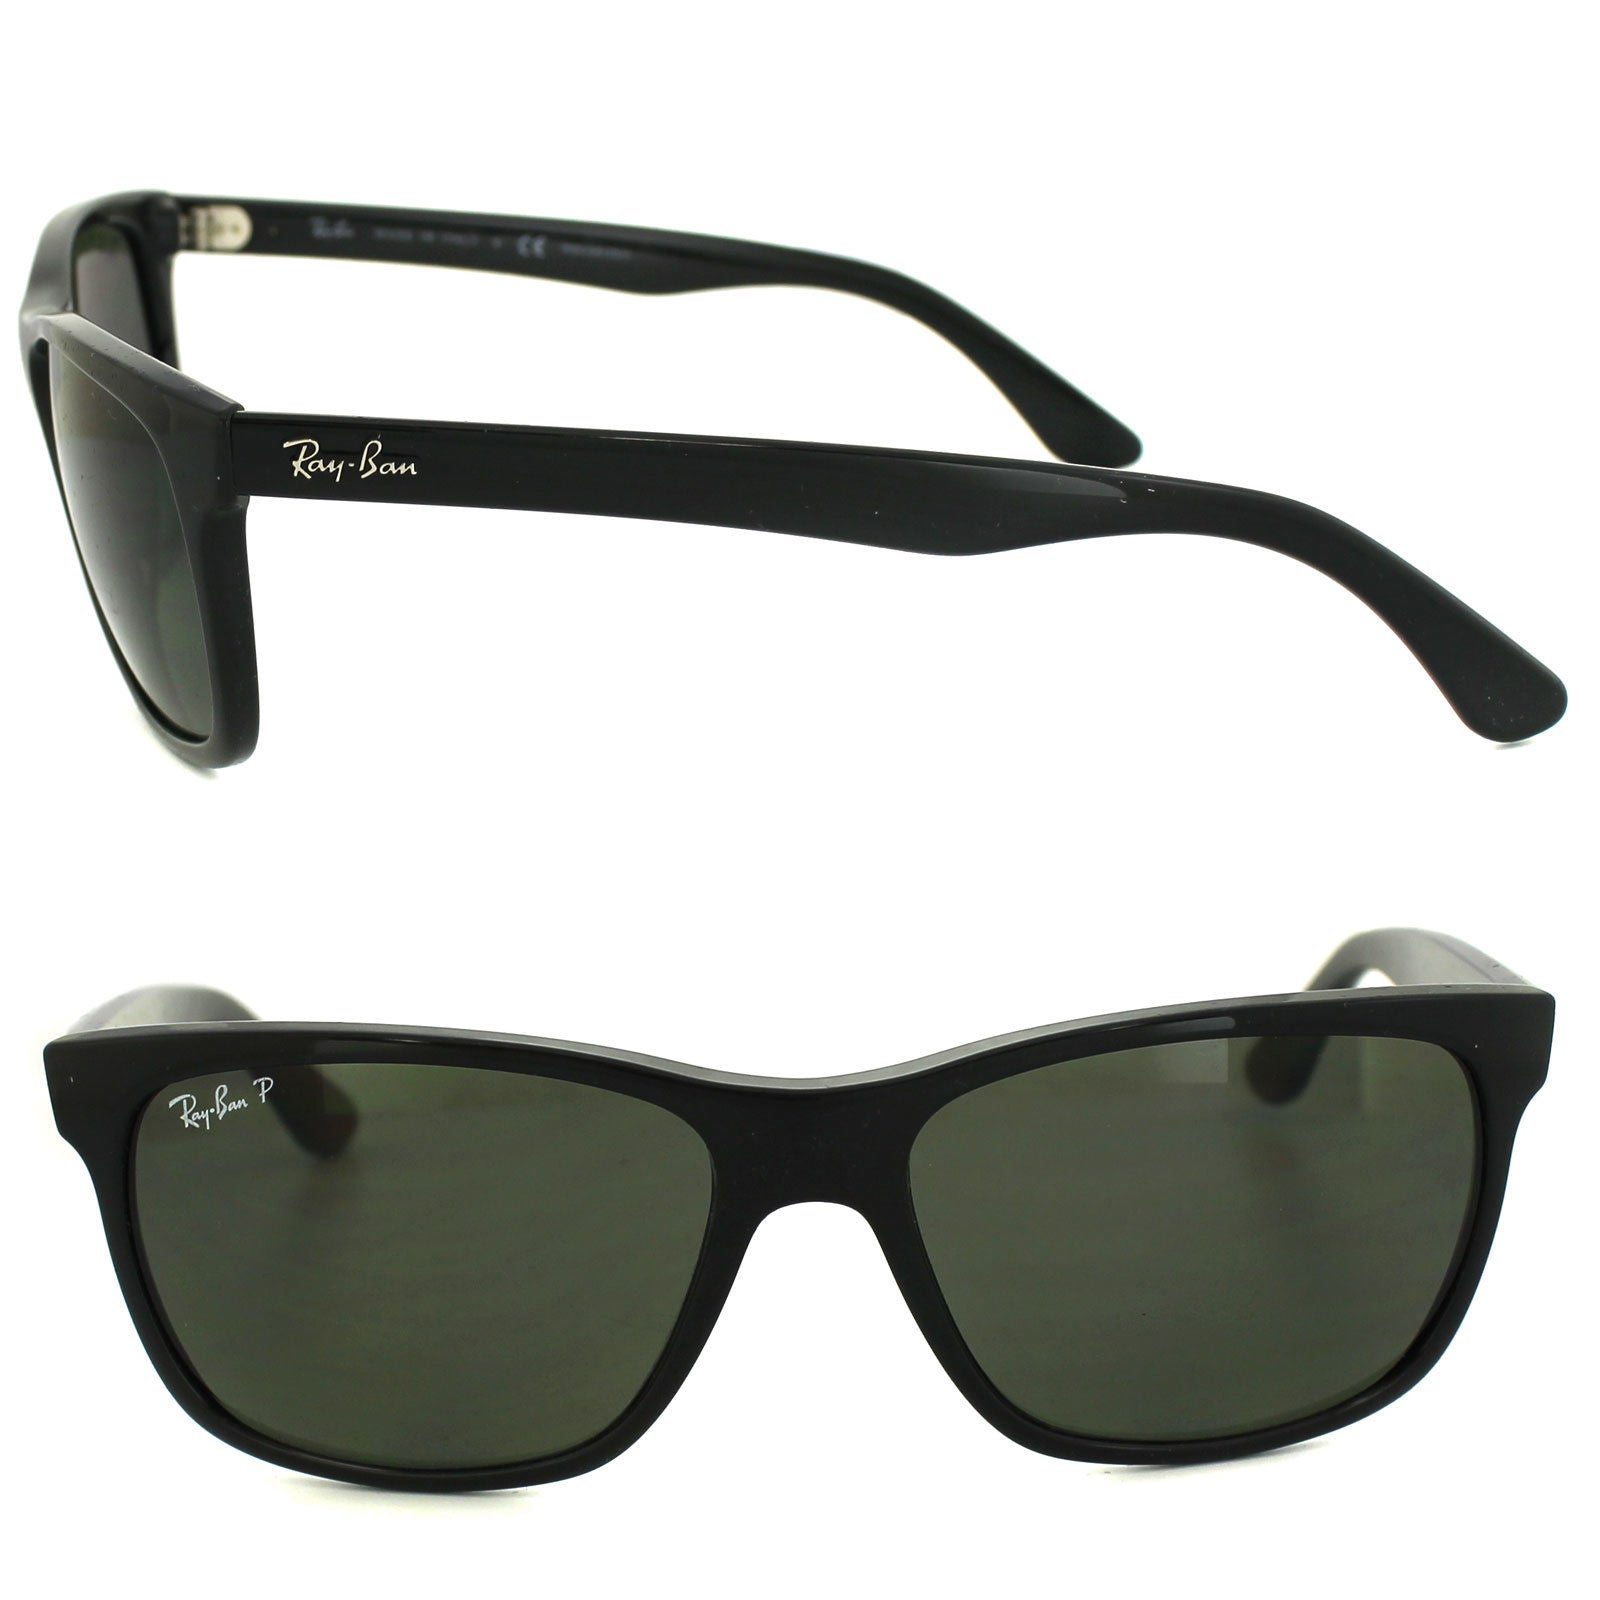 364c16760a ... Load image into Gallery viewer, RayBan Highstreet POLARIZED Sunglasses  Black Green Classic G-15 ...